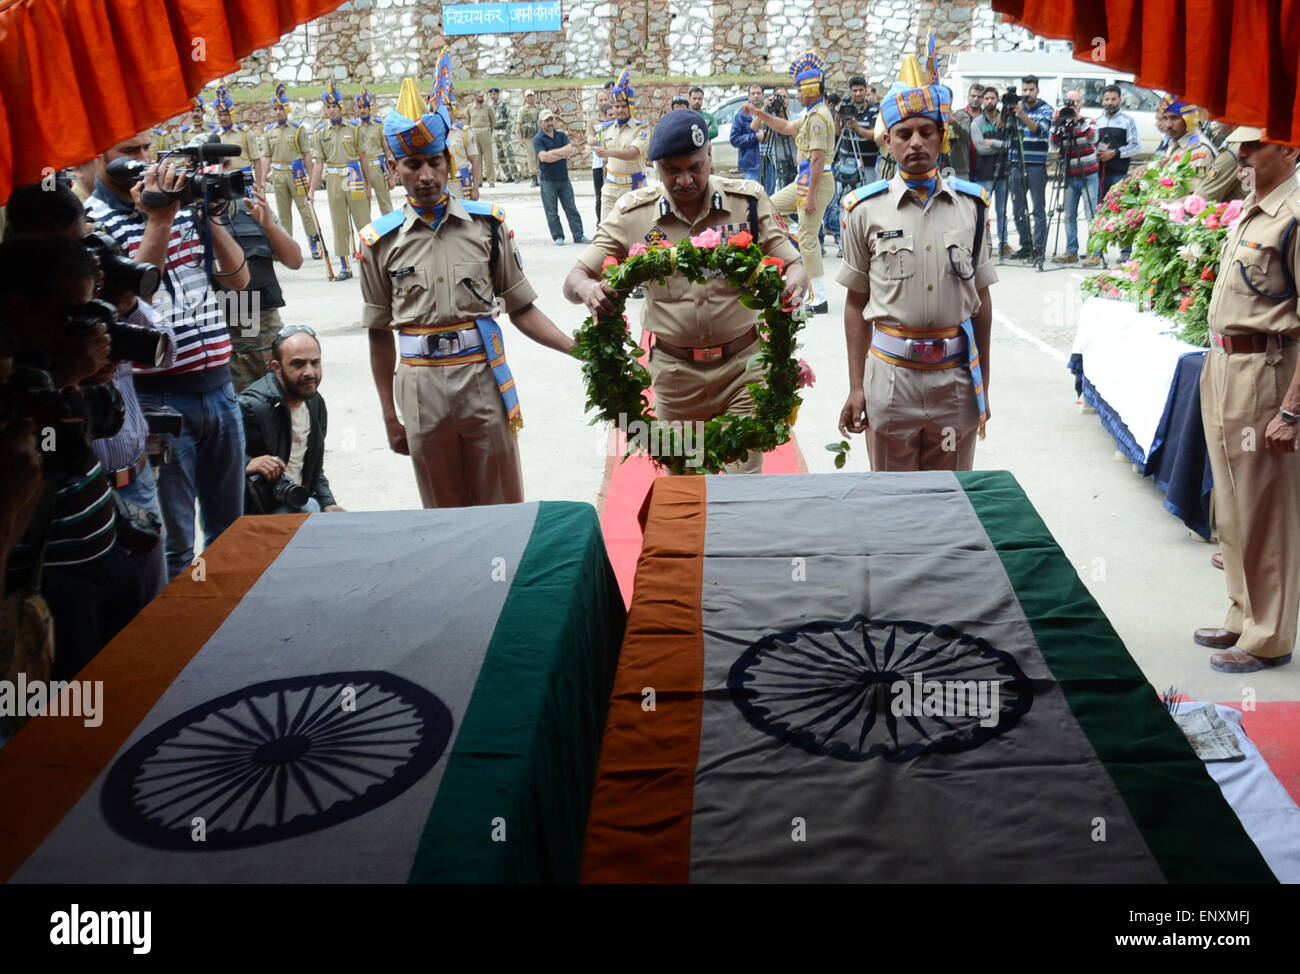 Srinagar, Indian Administered Kashmir. 12th May, 2015. Indian paramilitary officers salute on the coffins containing - Stock Image